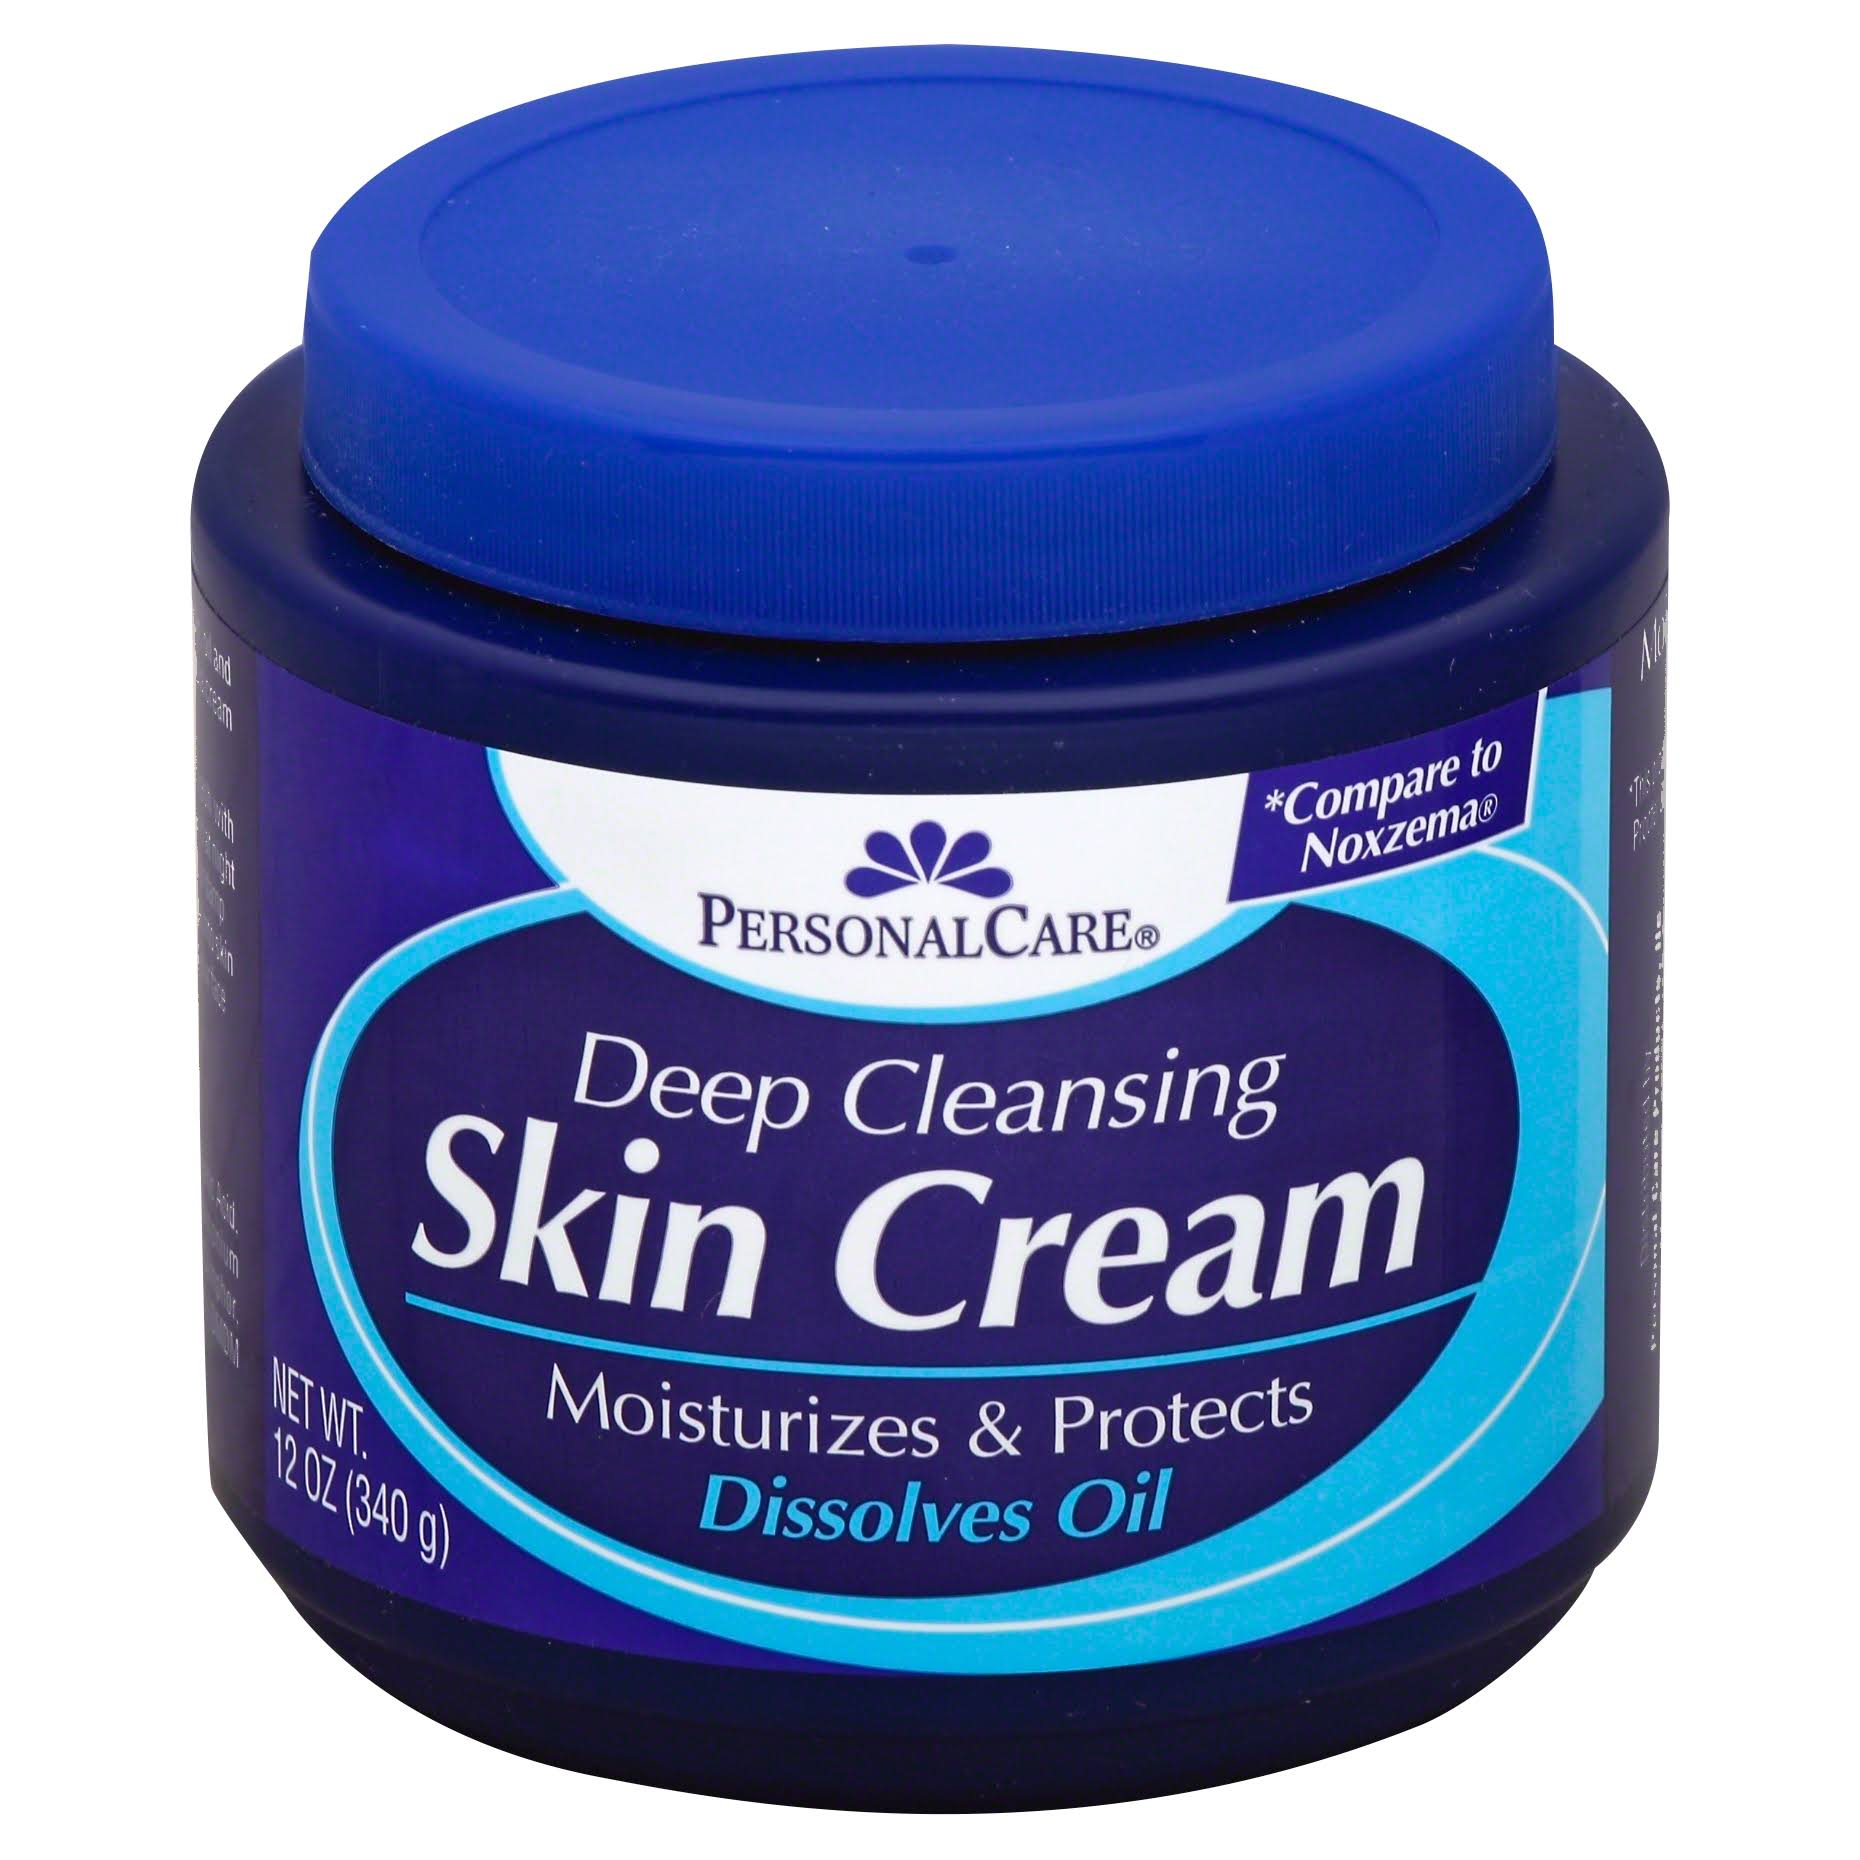 DDI Deep Cleansing Skin Cream - 12 Oz